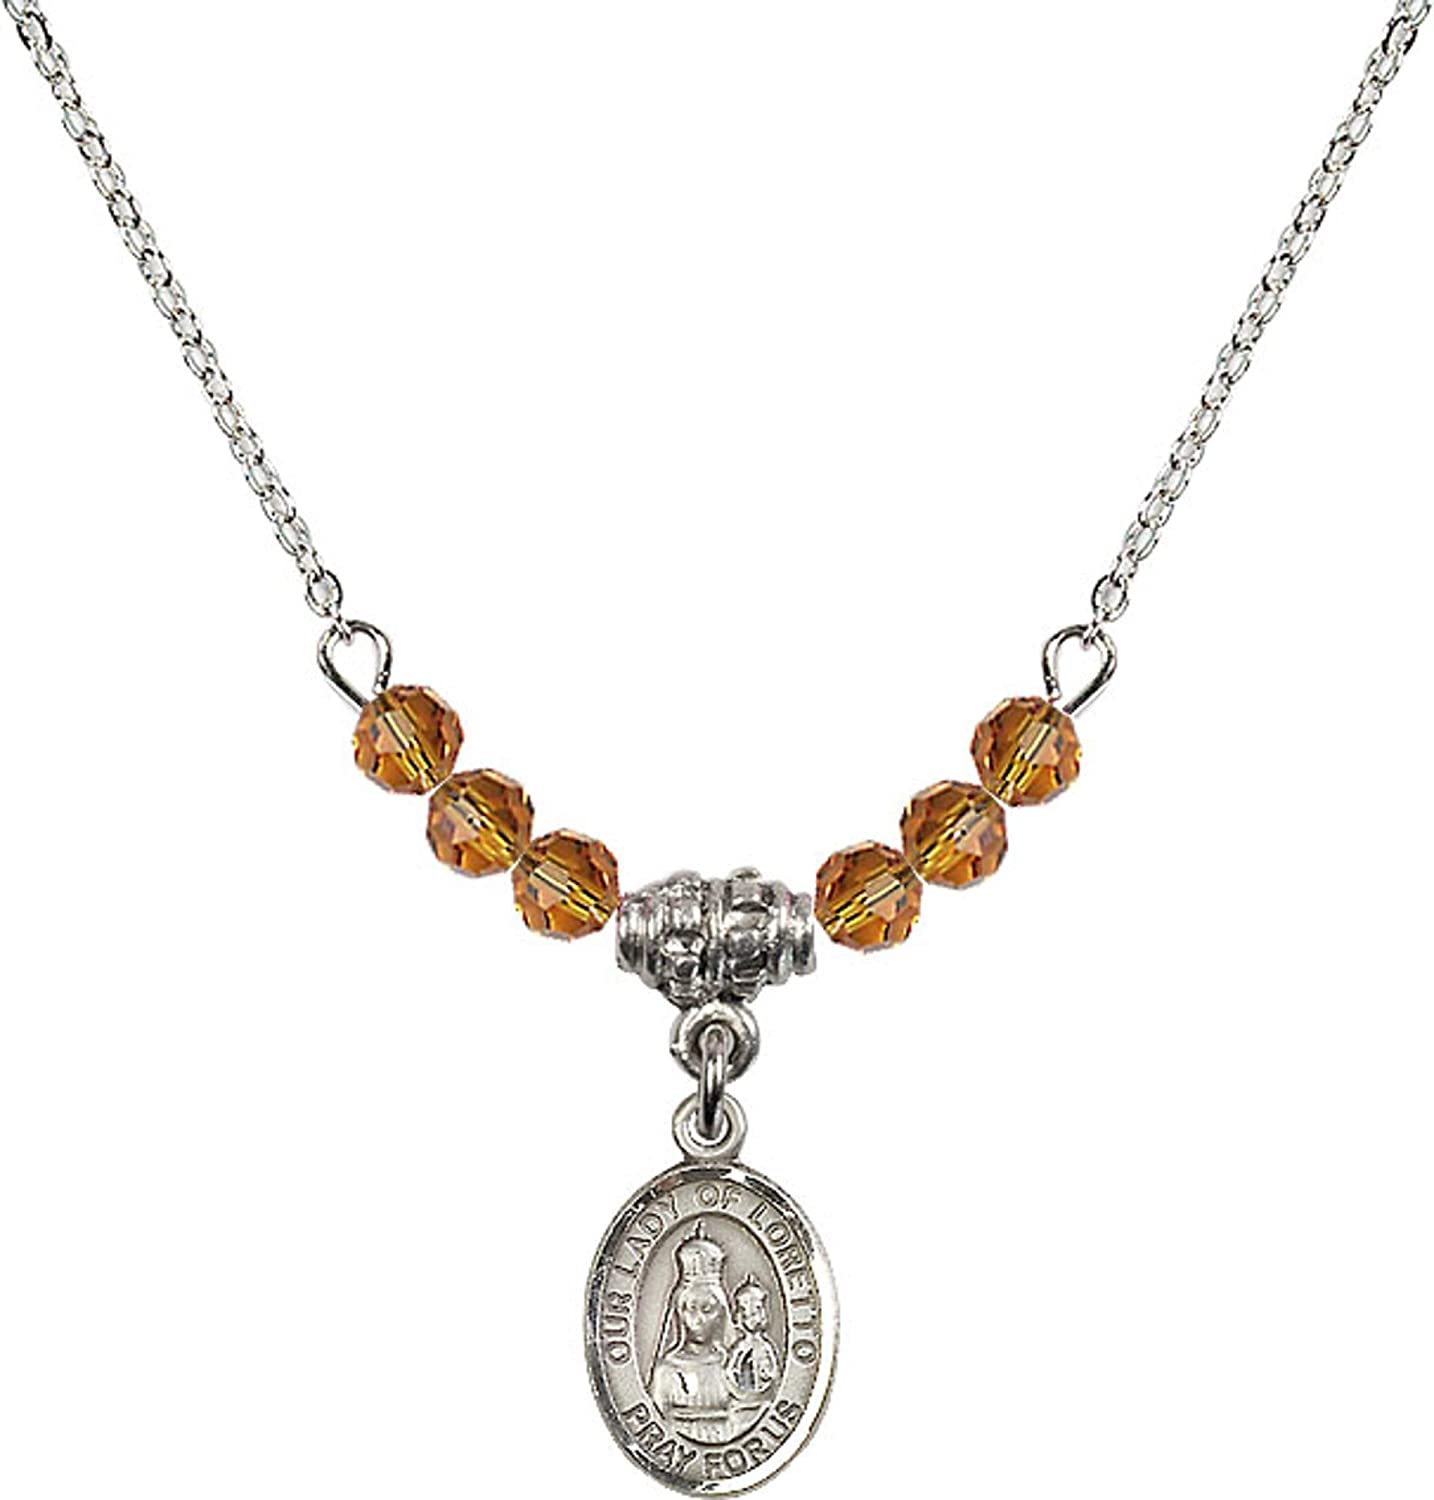 Bonyak Jewelry 18 Inch Rhodium Plated Necklace w// 4mm Yellow November Birth Month Stone Beads and Our Lady of Loretto Charm